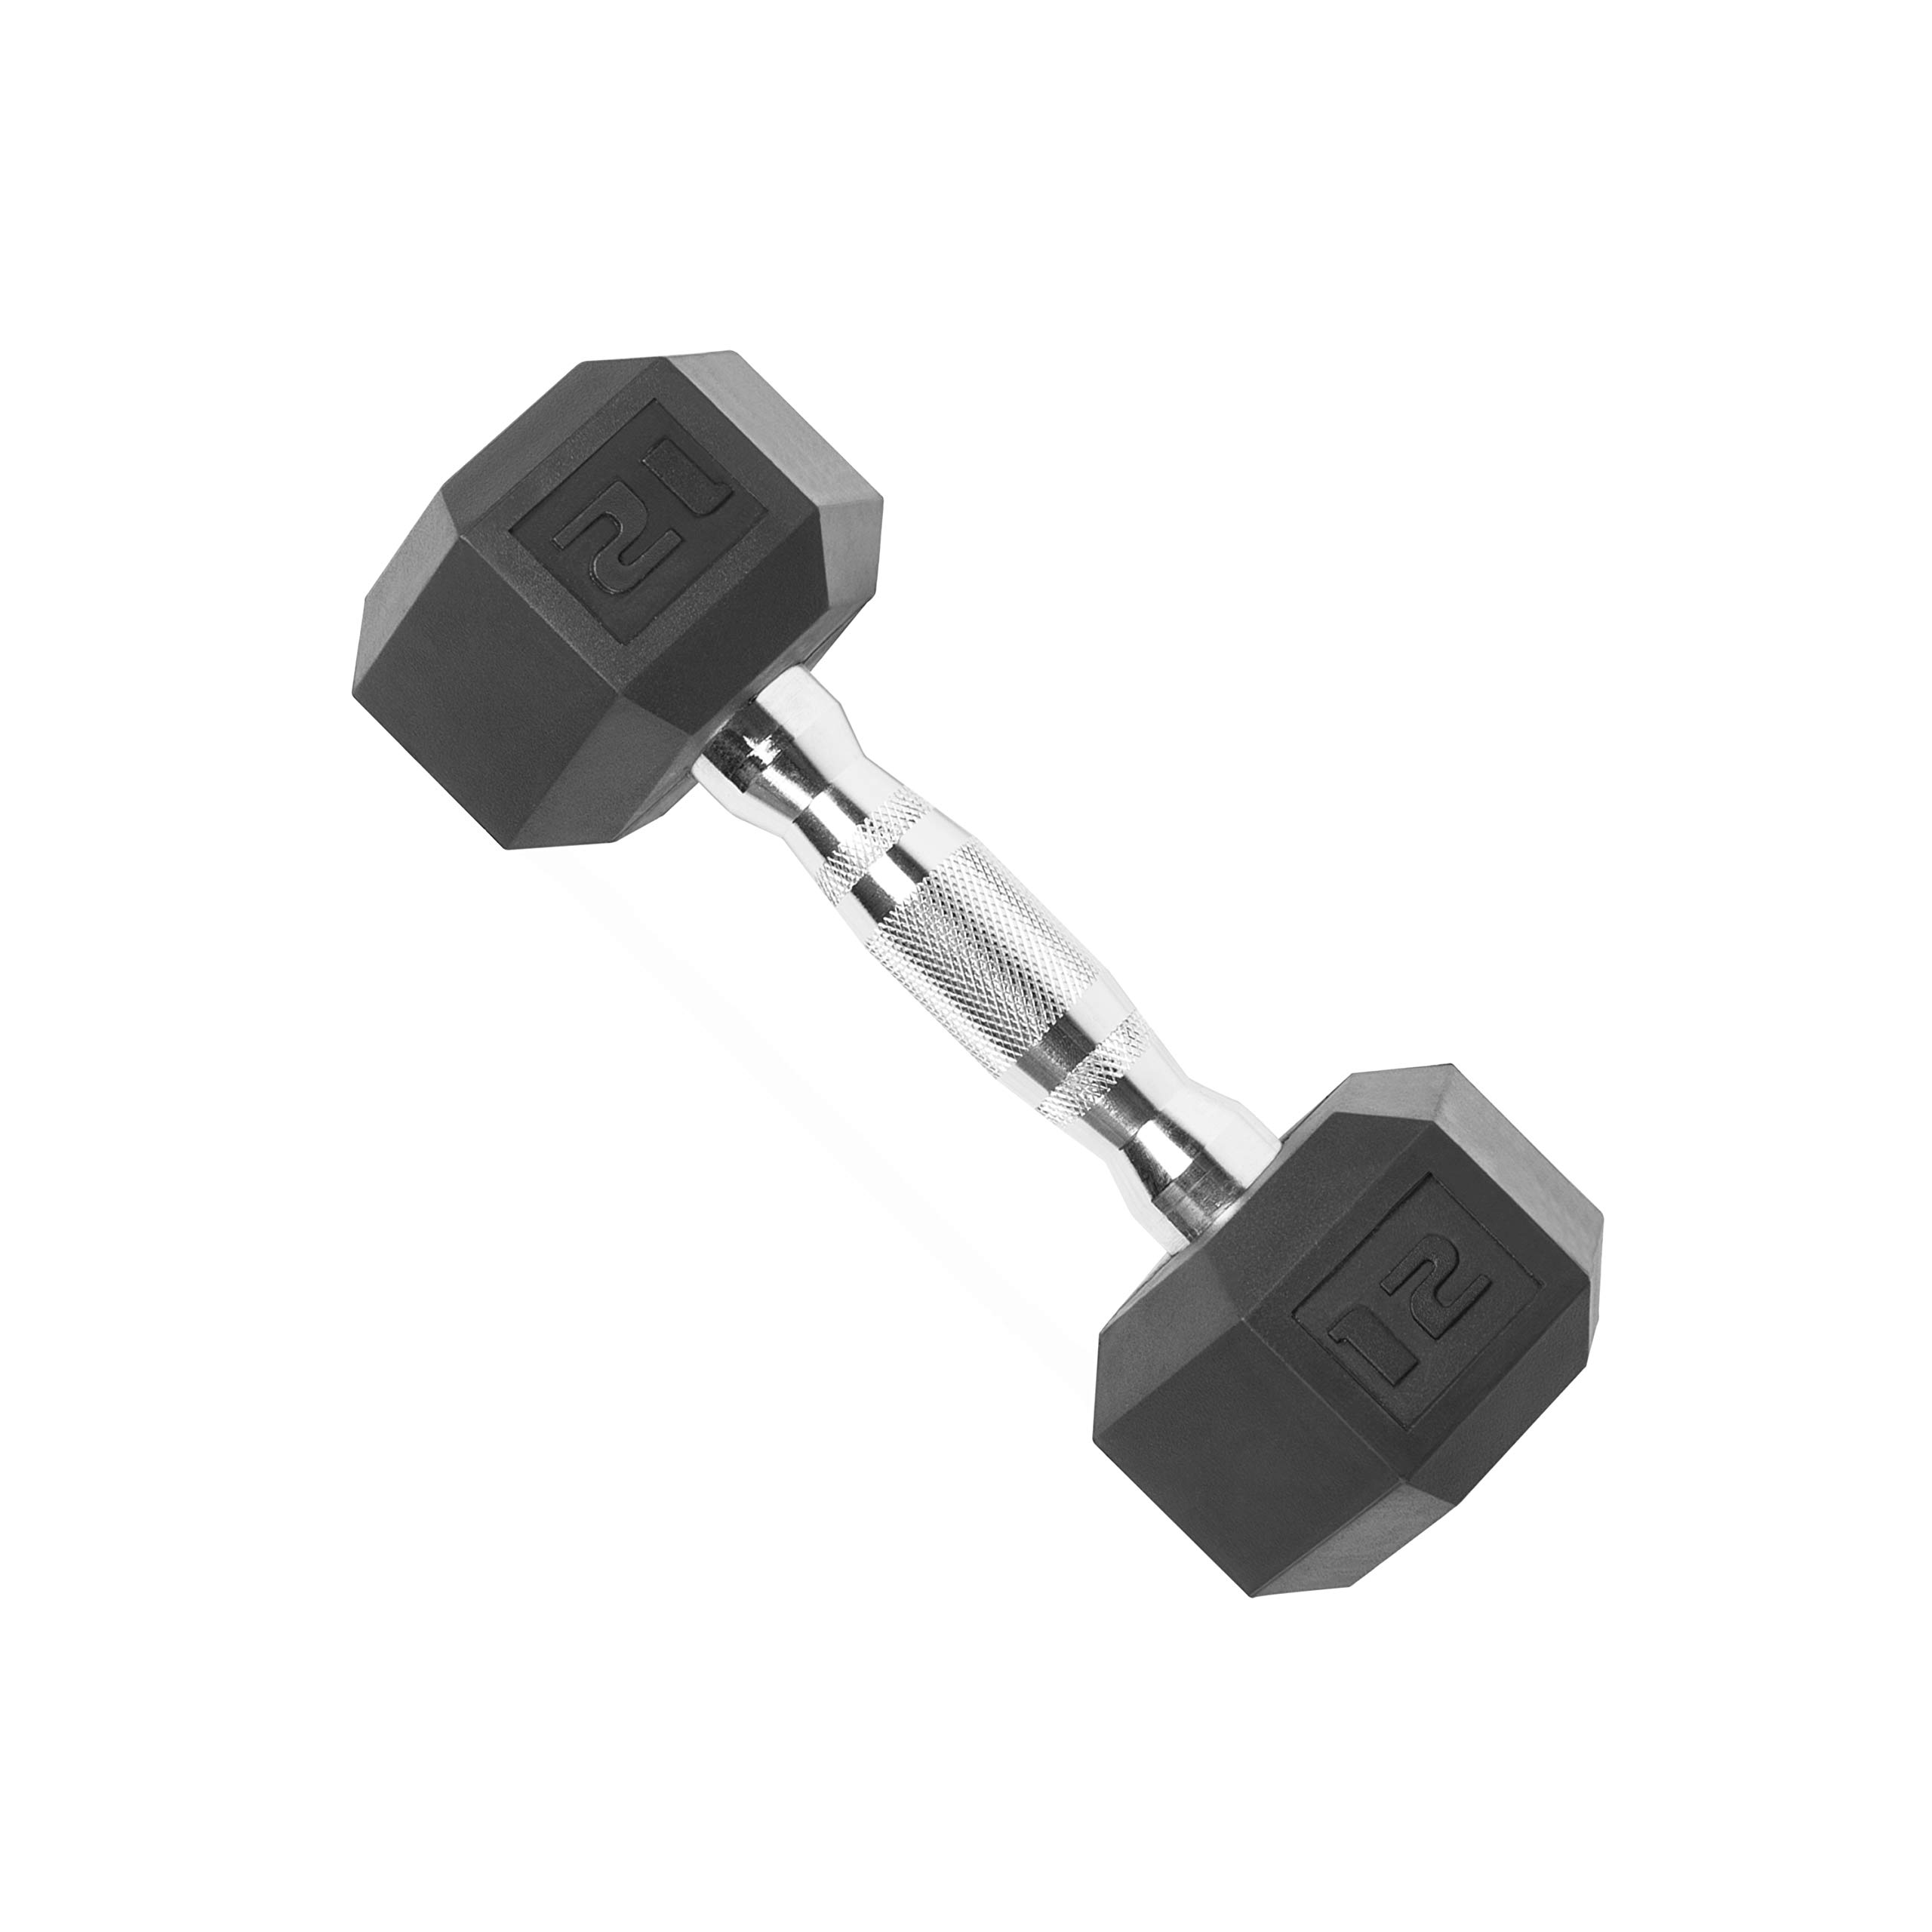 CAP Barbell Coated Hex Dumbbell Weights, 12 Pound by CAP Barbell